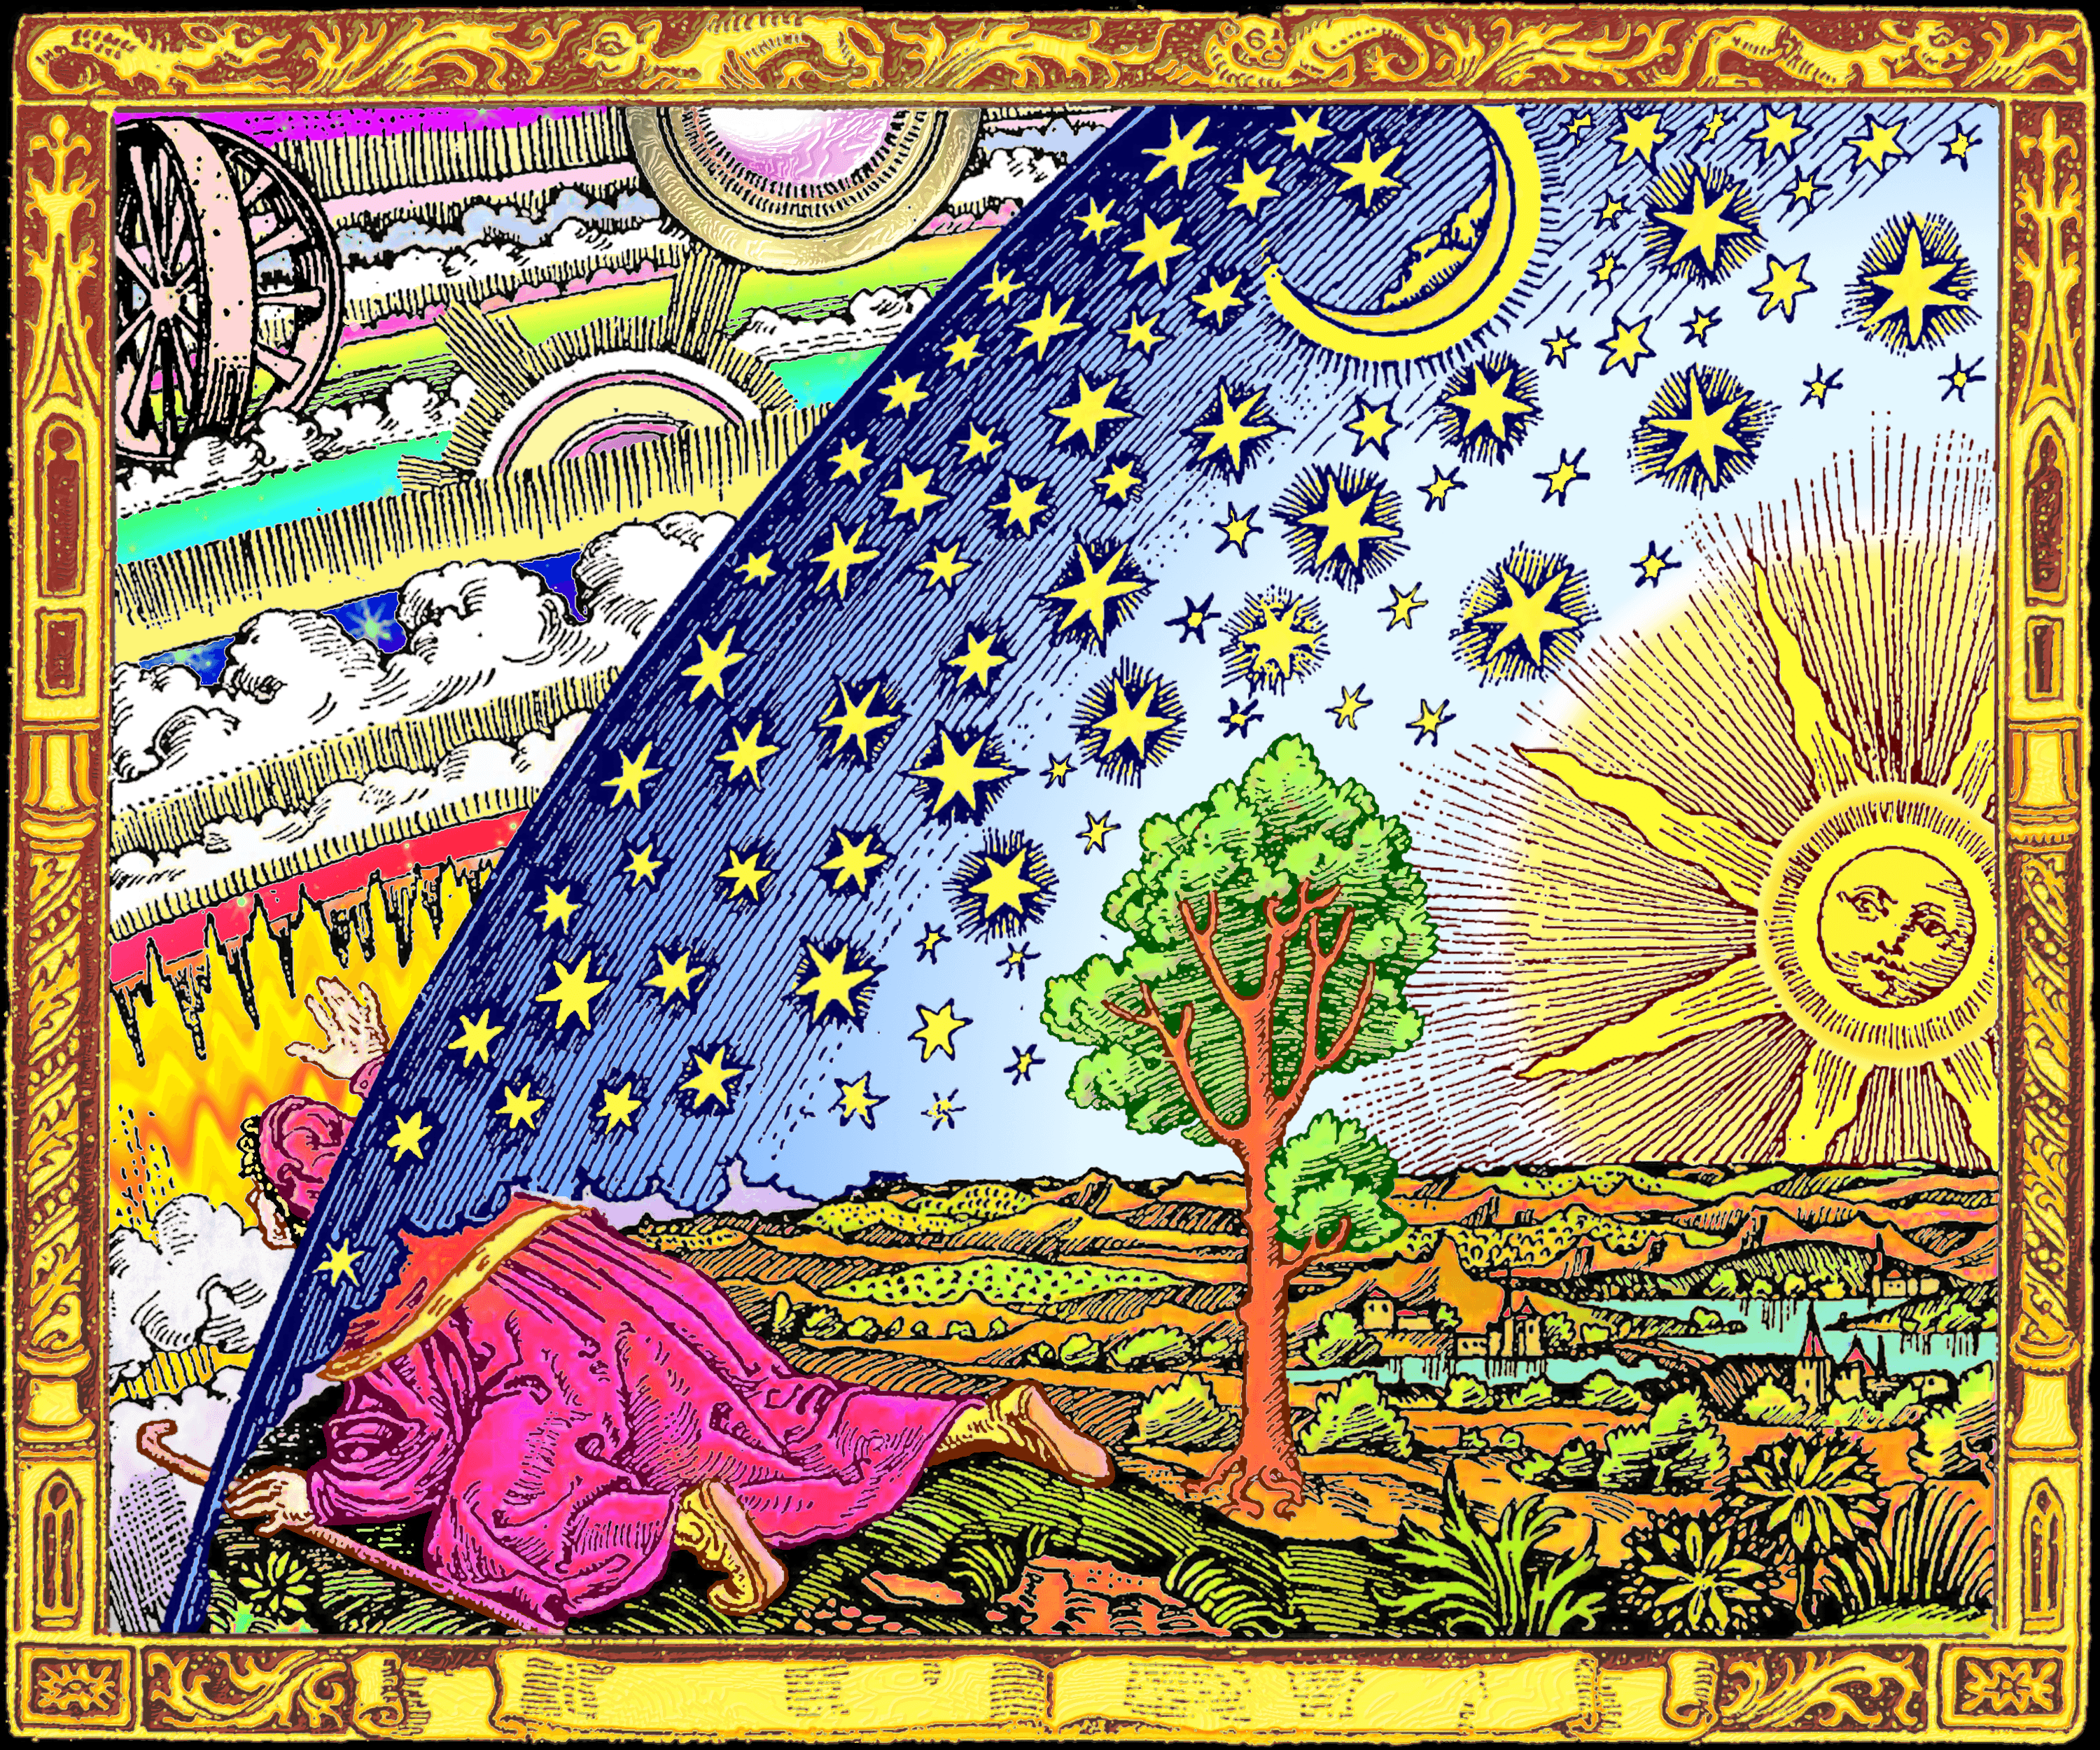 Archivo:Flammarion-color.png - Wikipedia, la enciclopedia libre